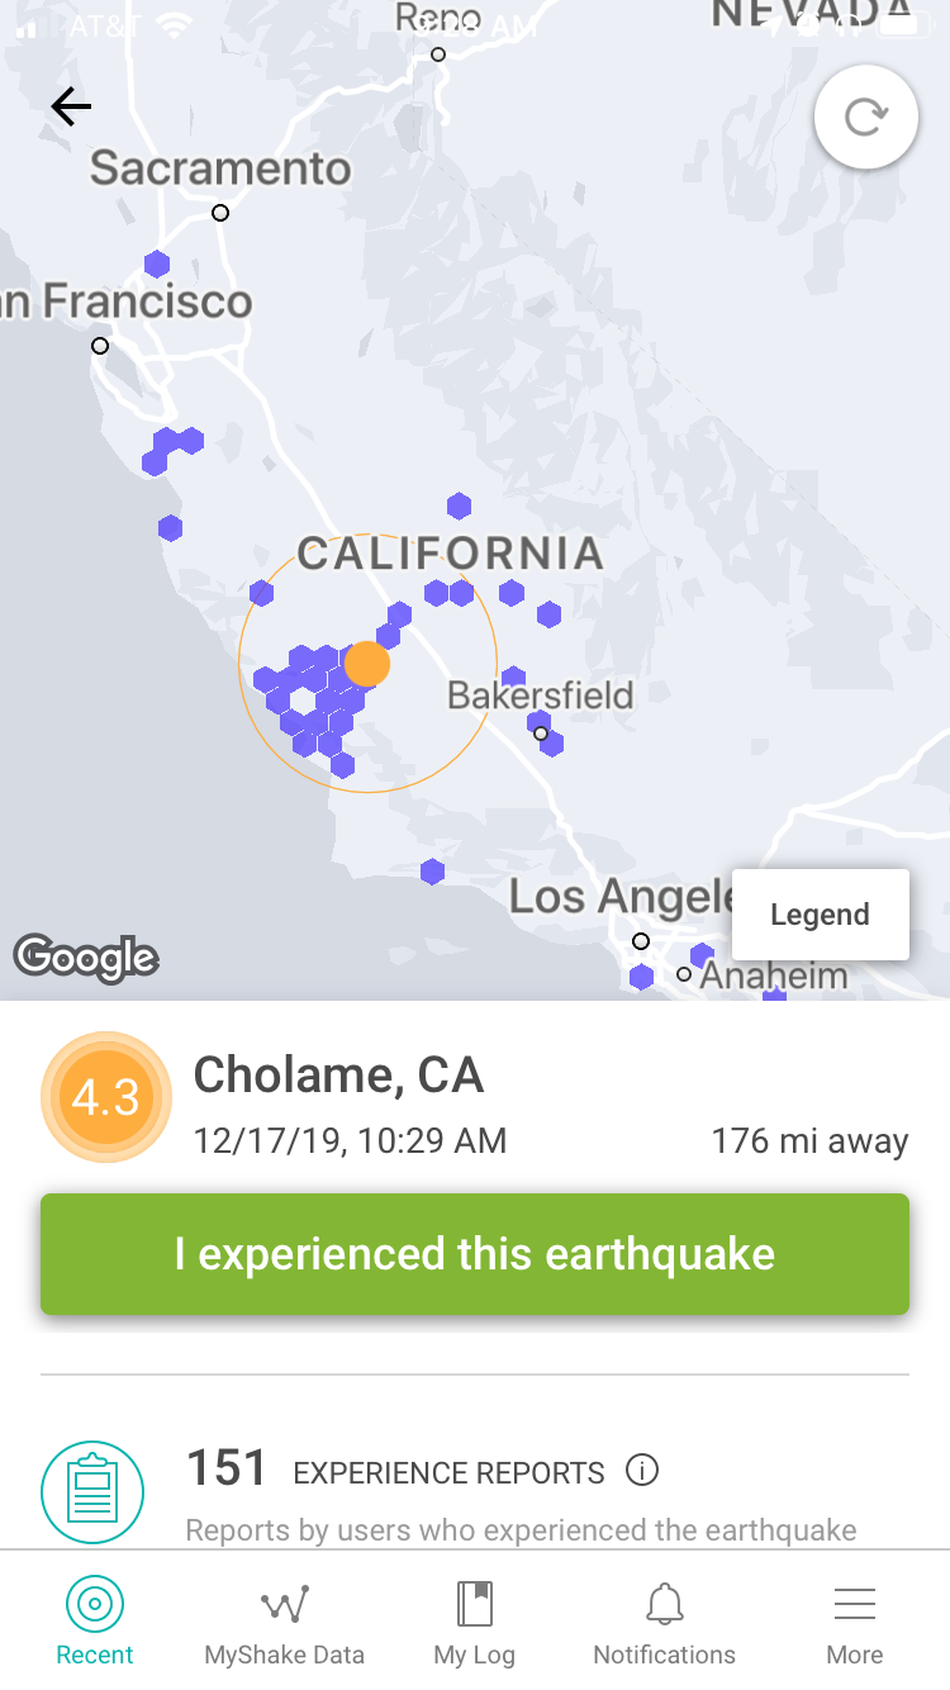 Earthquake triggers California's early warning app for the